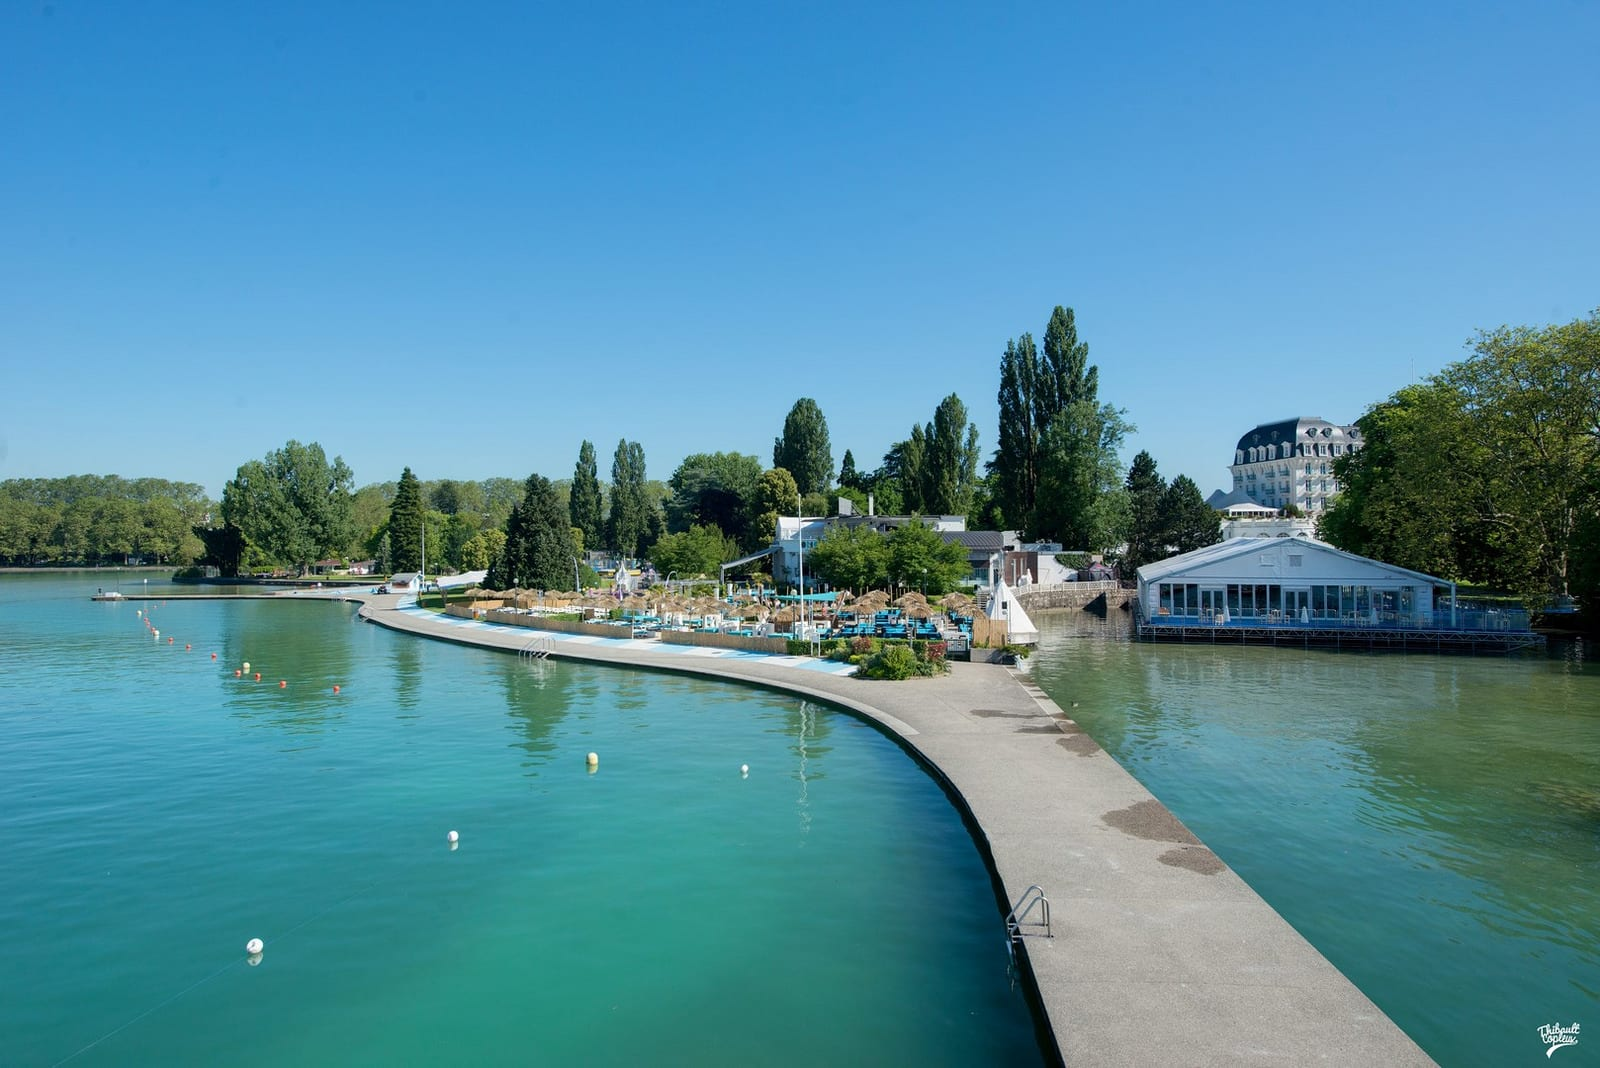 meilleures plages annecy